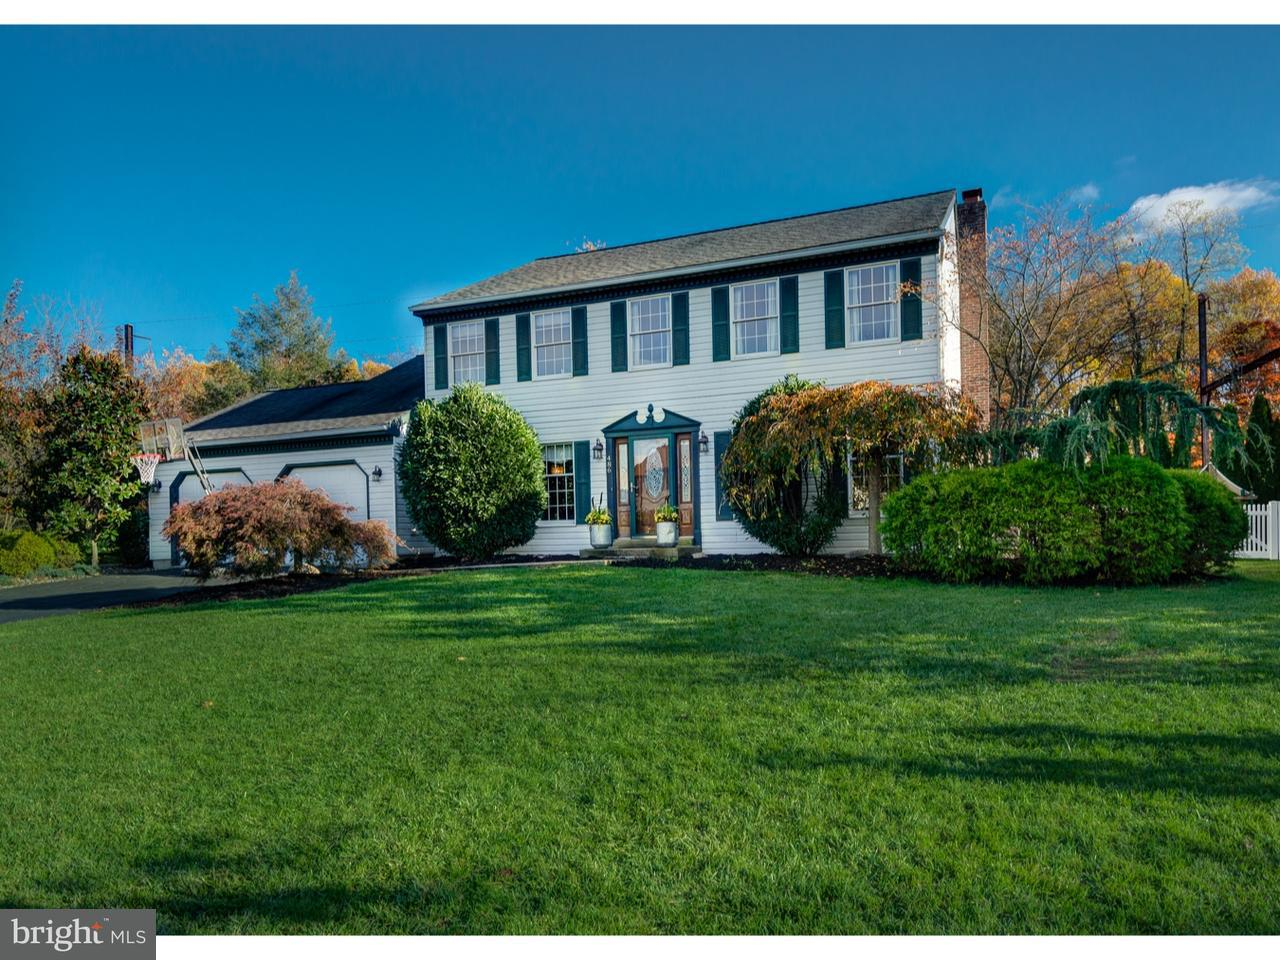 Single Family Home for Sale at 486 GAYLE Drive Yardley, Pennsylvania 19067 United States